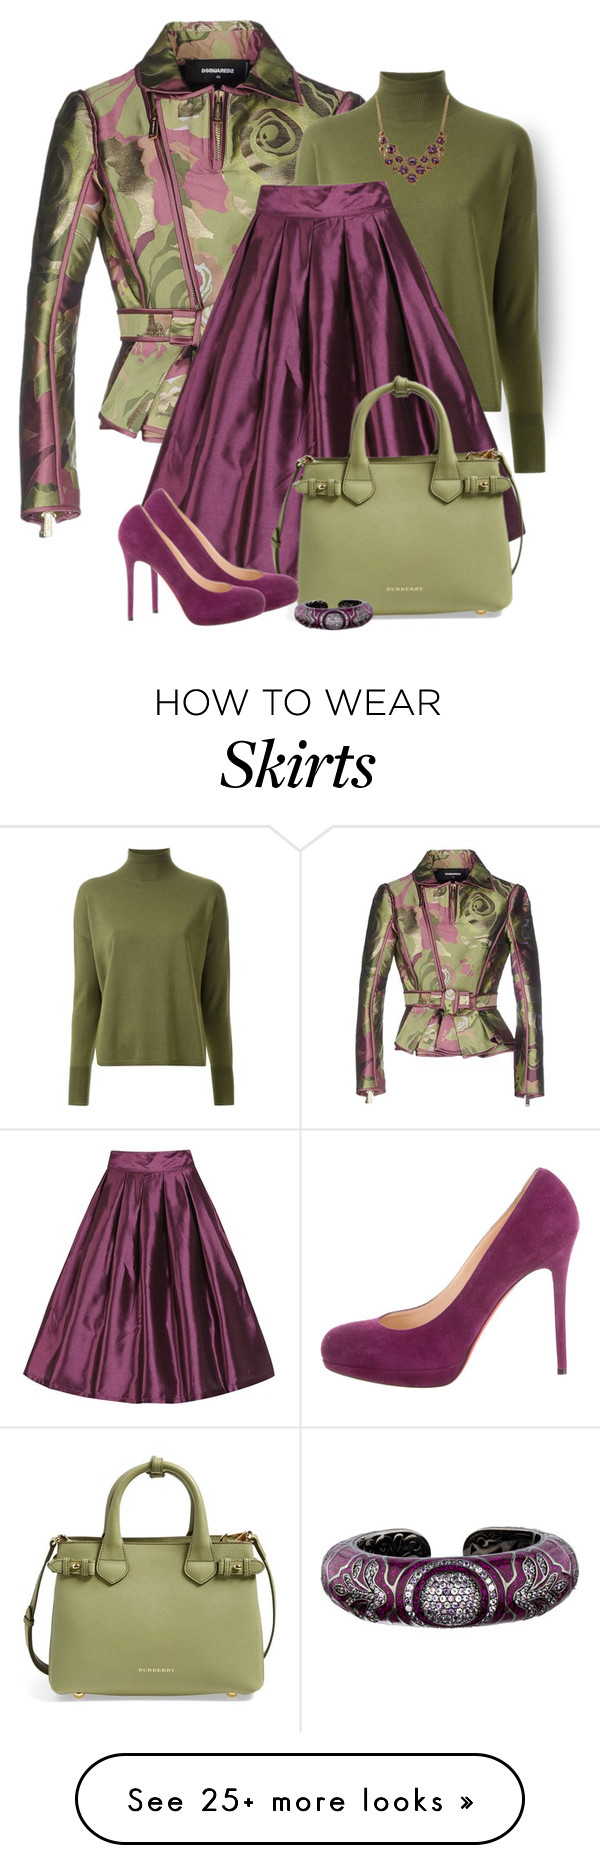 """""""Matching skirt and shoes"""" by lorrainekeenan on Polyvore featuring Dsquared2, Scanlan Theodore, Burberry, Matthew Campbell Laurenza, Christian Louboutin and Ruby Rocks"""